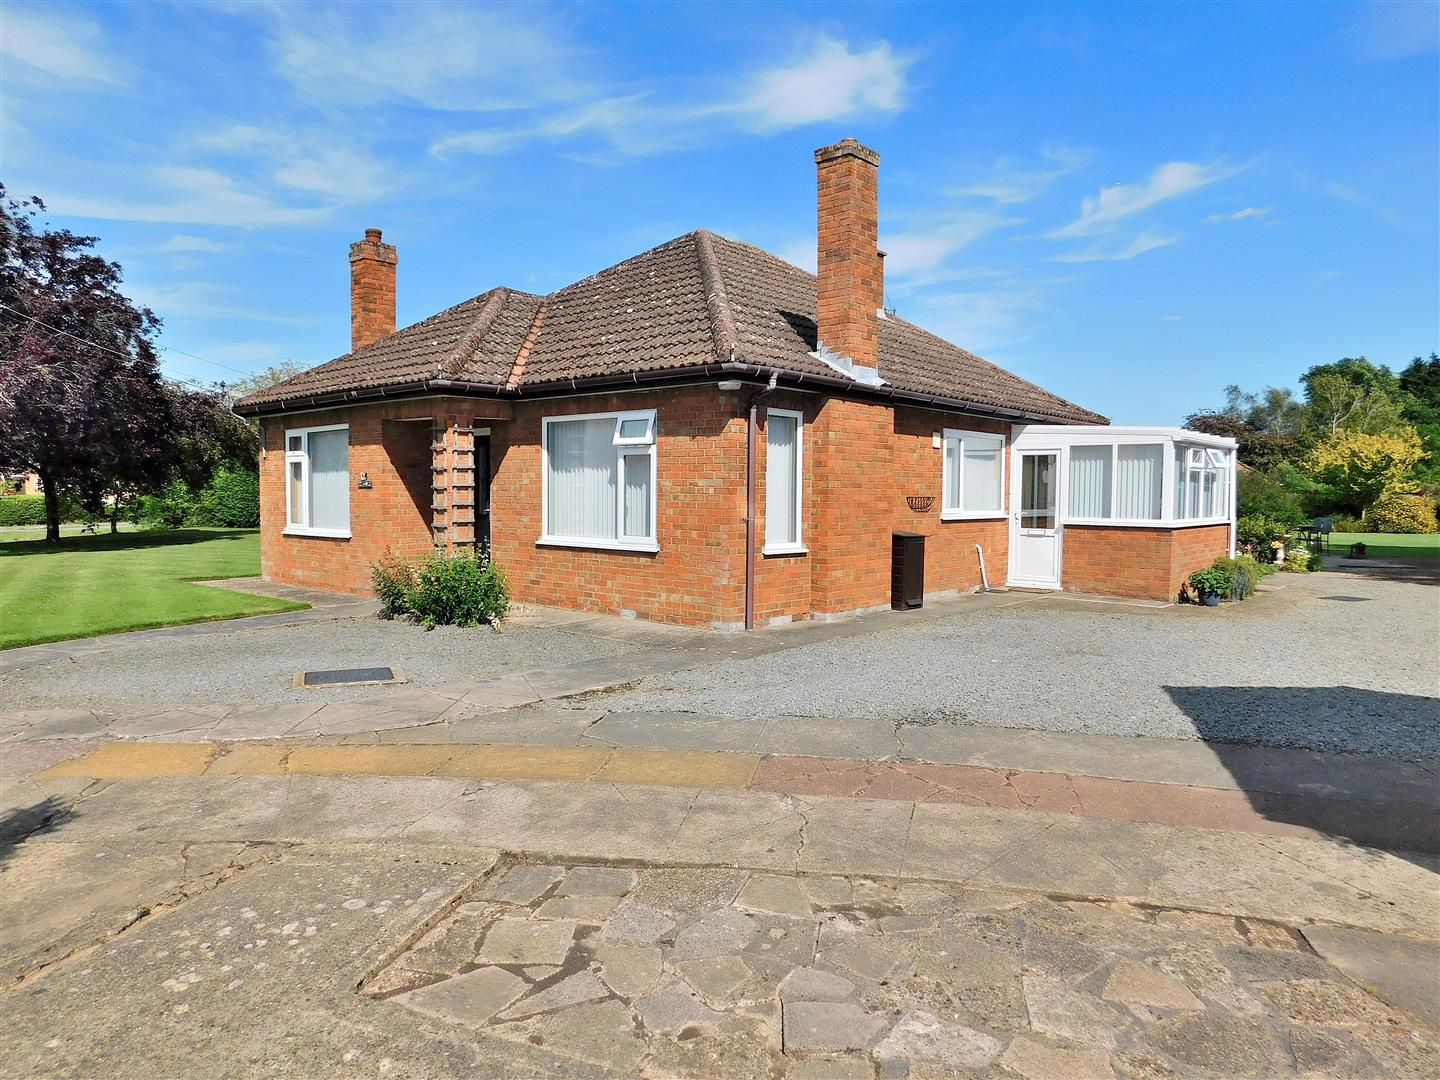 3 bed detached bungalow for sale in King's Lynn, PE34 4DN - Property Image 1